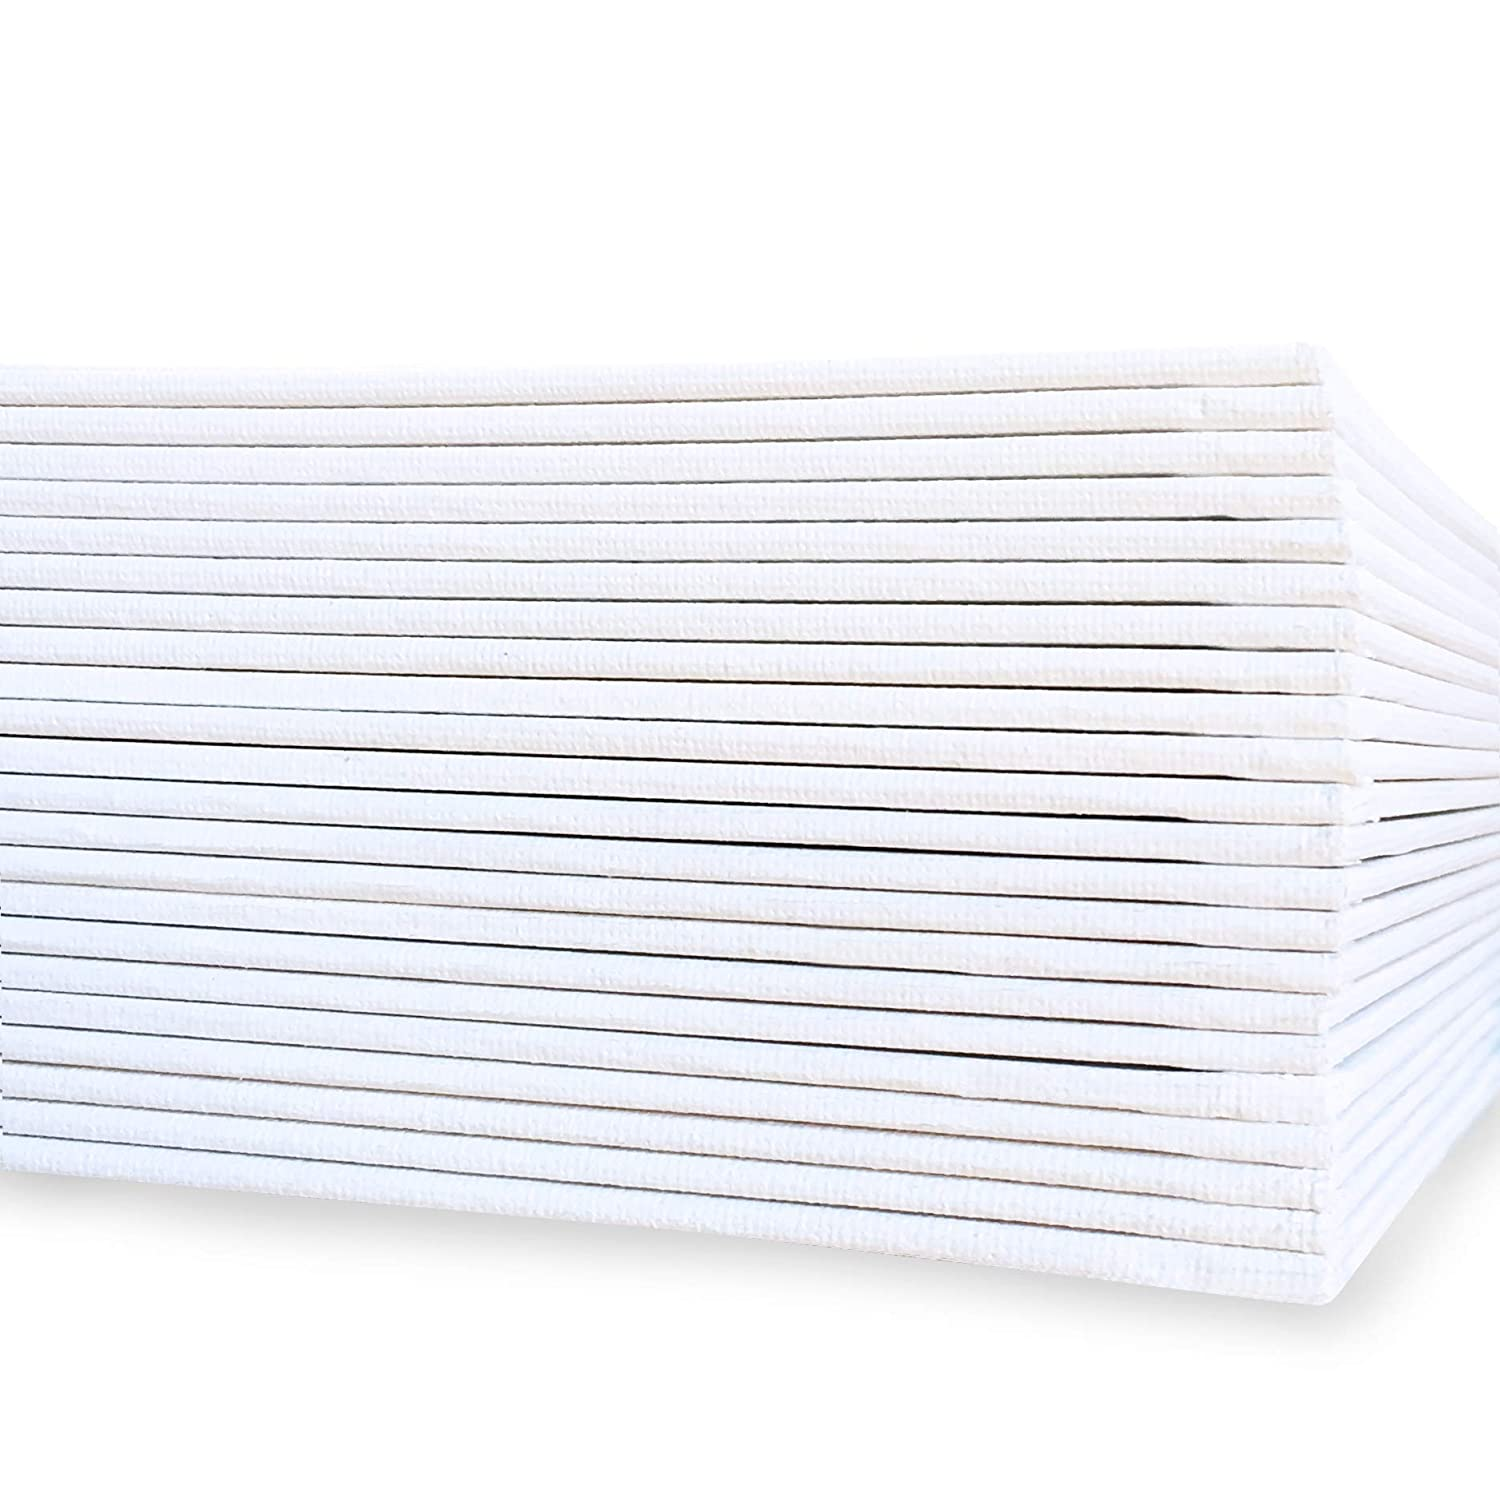 MILO Bulk Set of 24 12x12 inch Canvases Panel Boards for Painting Ready to Paint Art Supplies White Blank Artist Board 12 x 12 24 Pack Canvas Panels